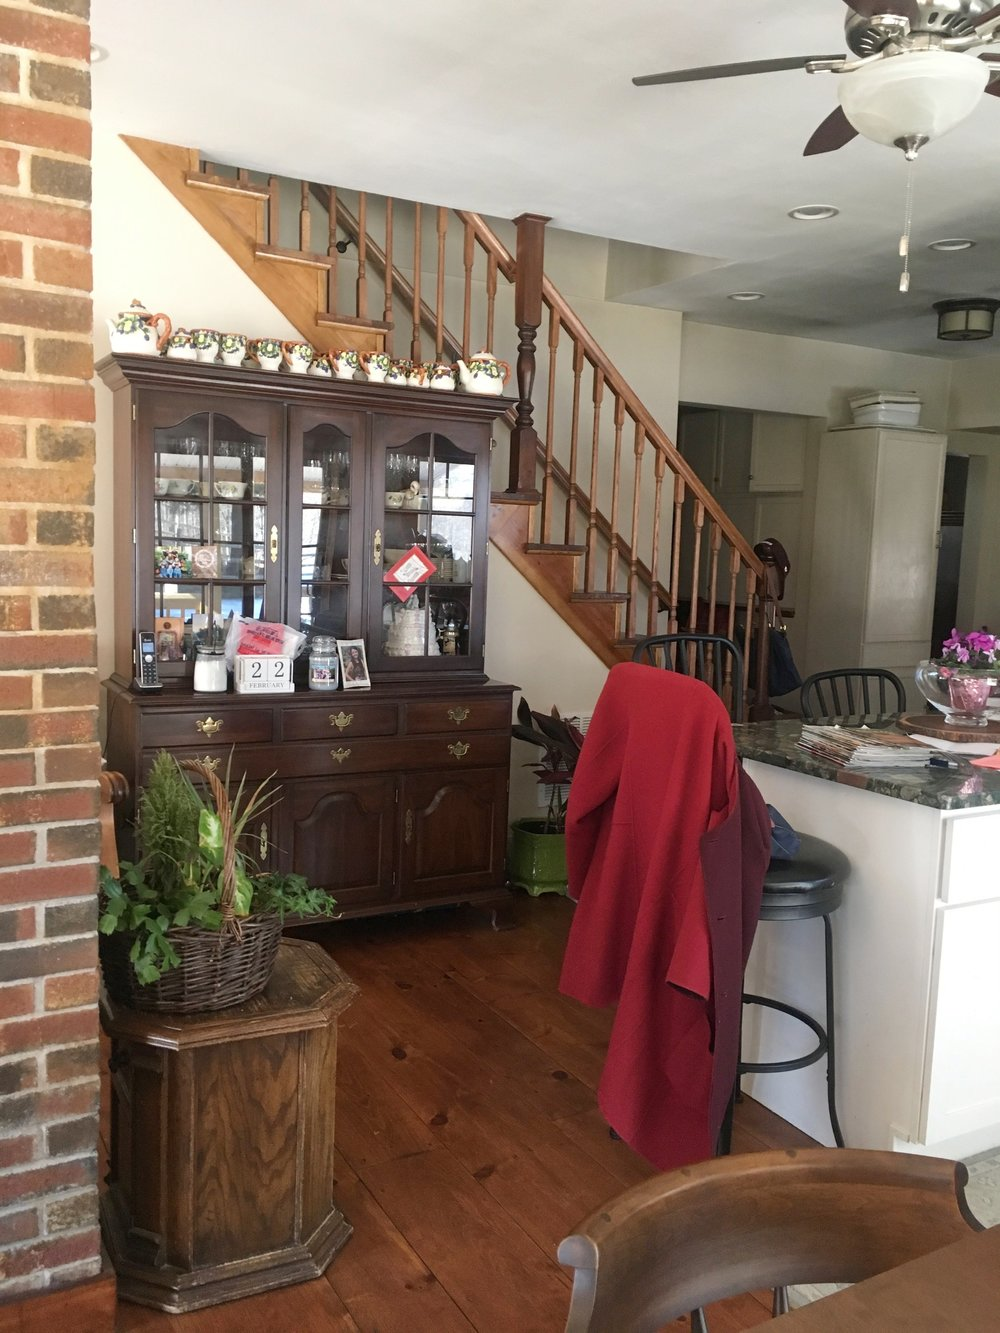 Before: This heavy china cabinet was taking up too much room physically and emotionally. It also became cluttered with objects that the homeowner no longer used.